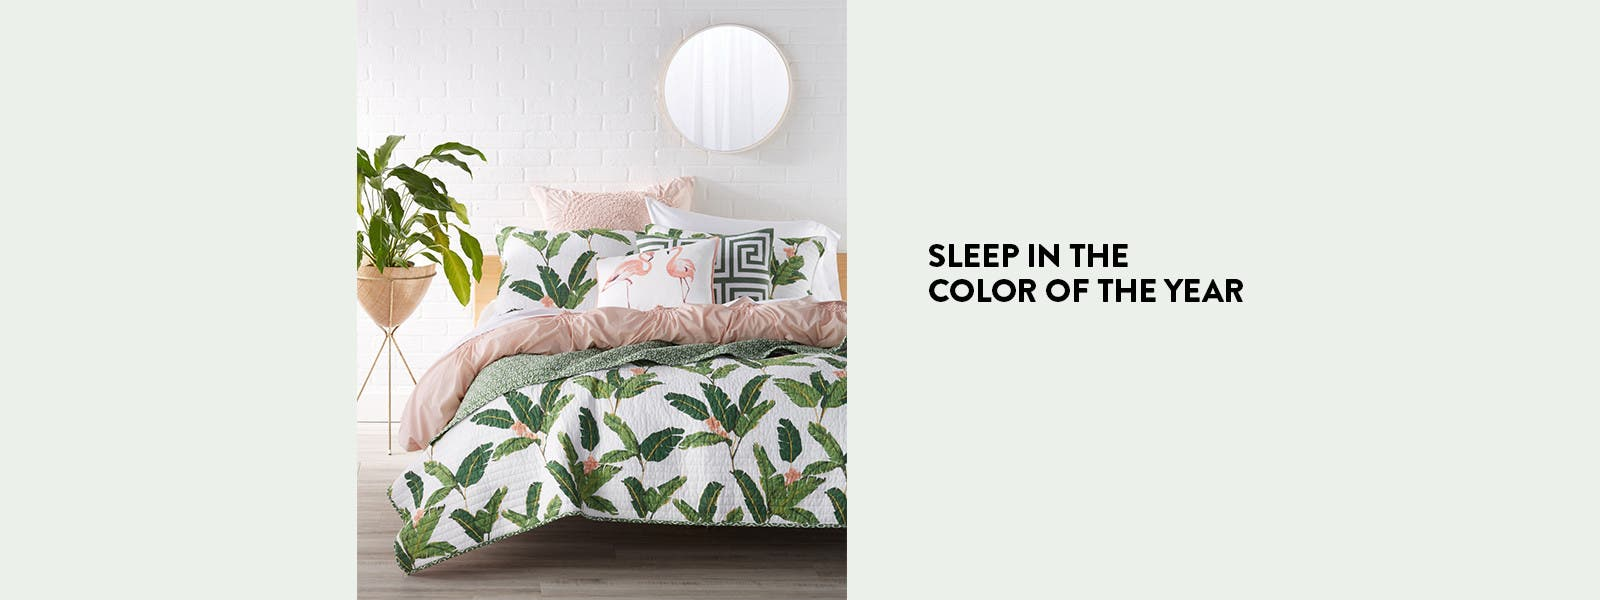 Sleep in the color of the year with green bedding.